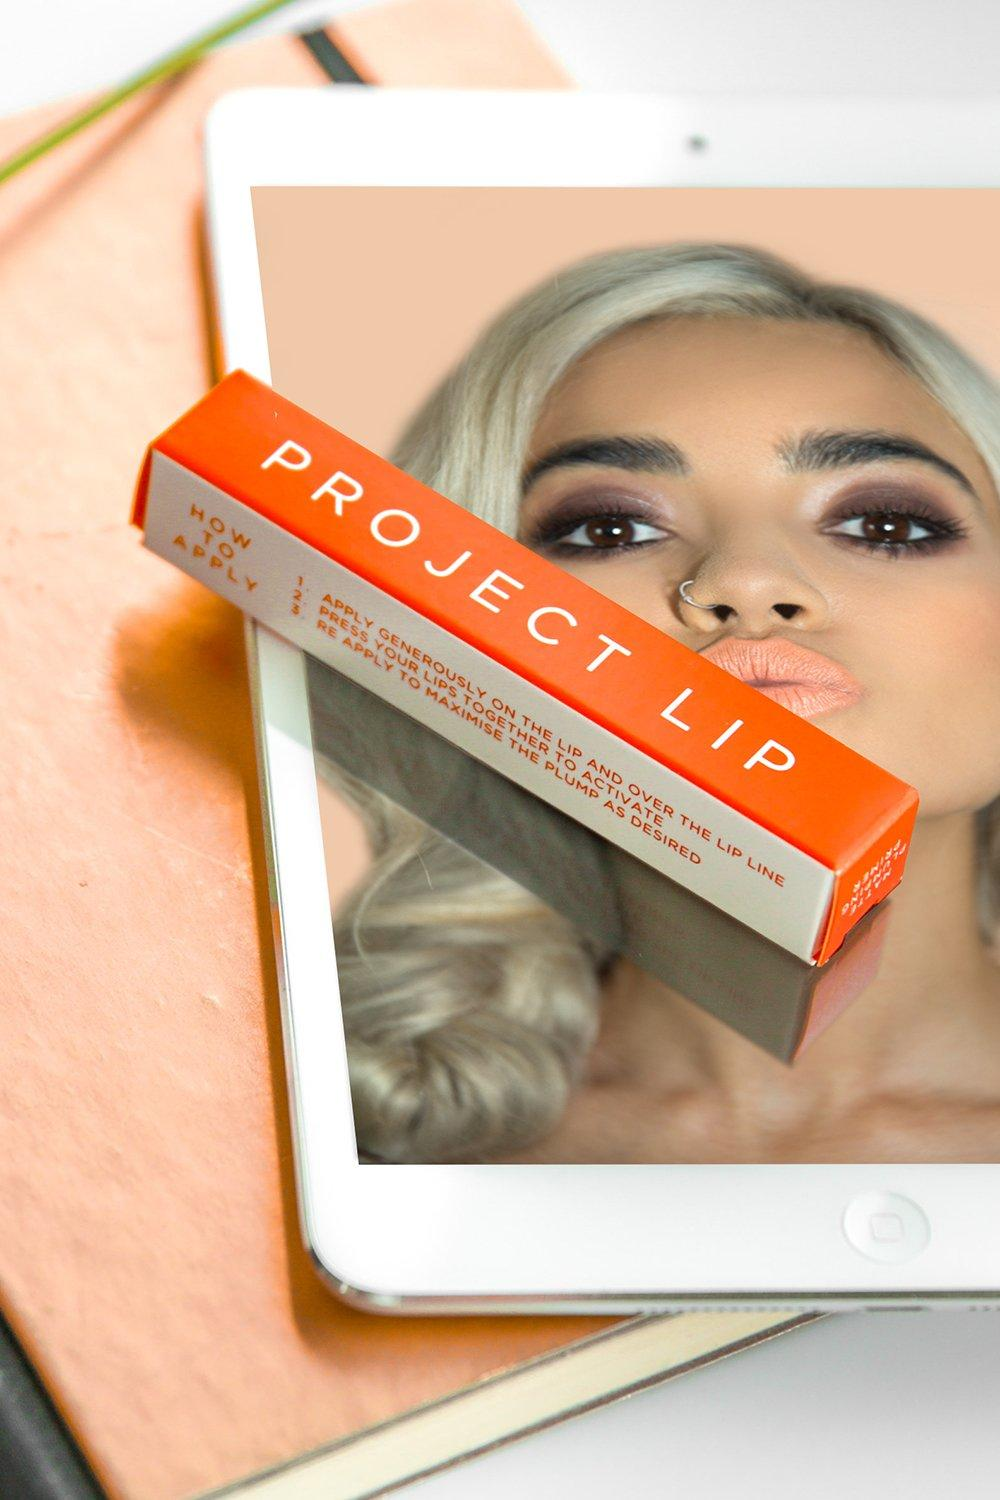 Project Lip Womens Project Lip Matte Plumping Primer - White - One Size, White